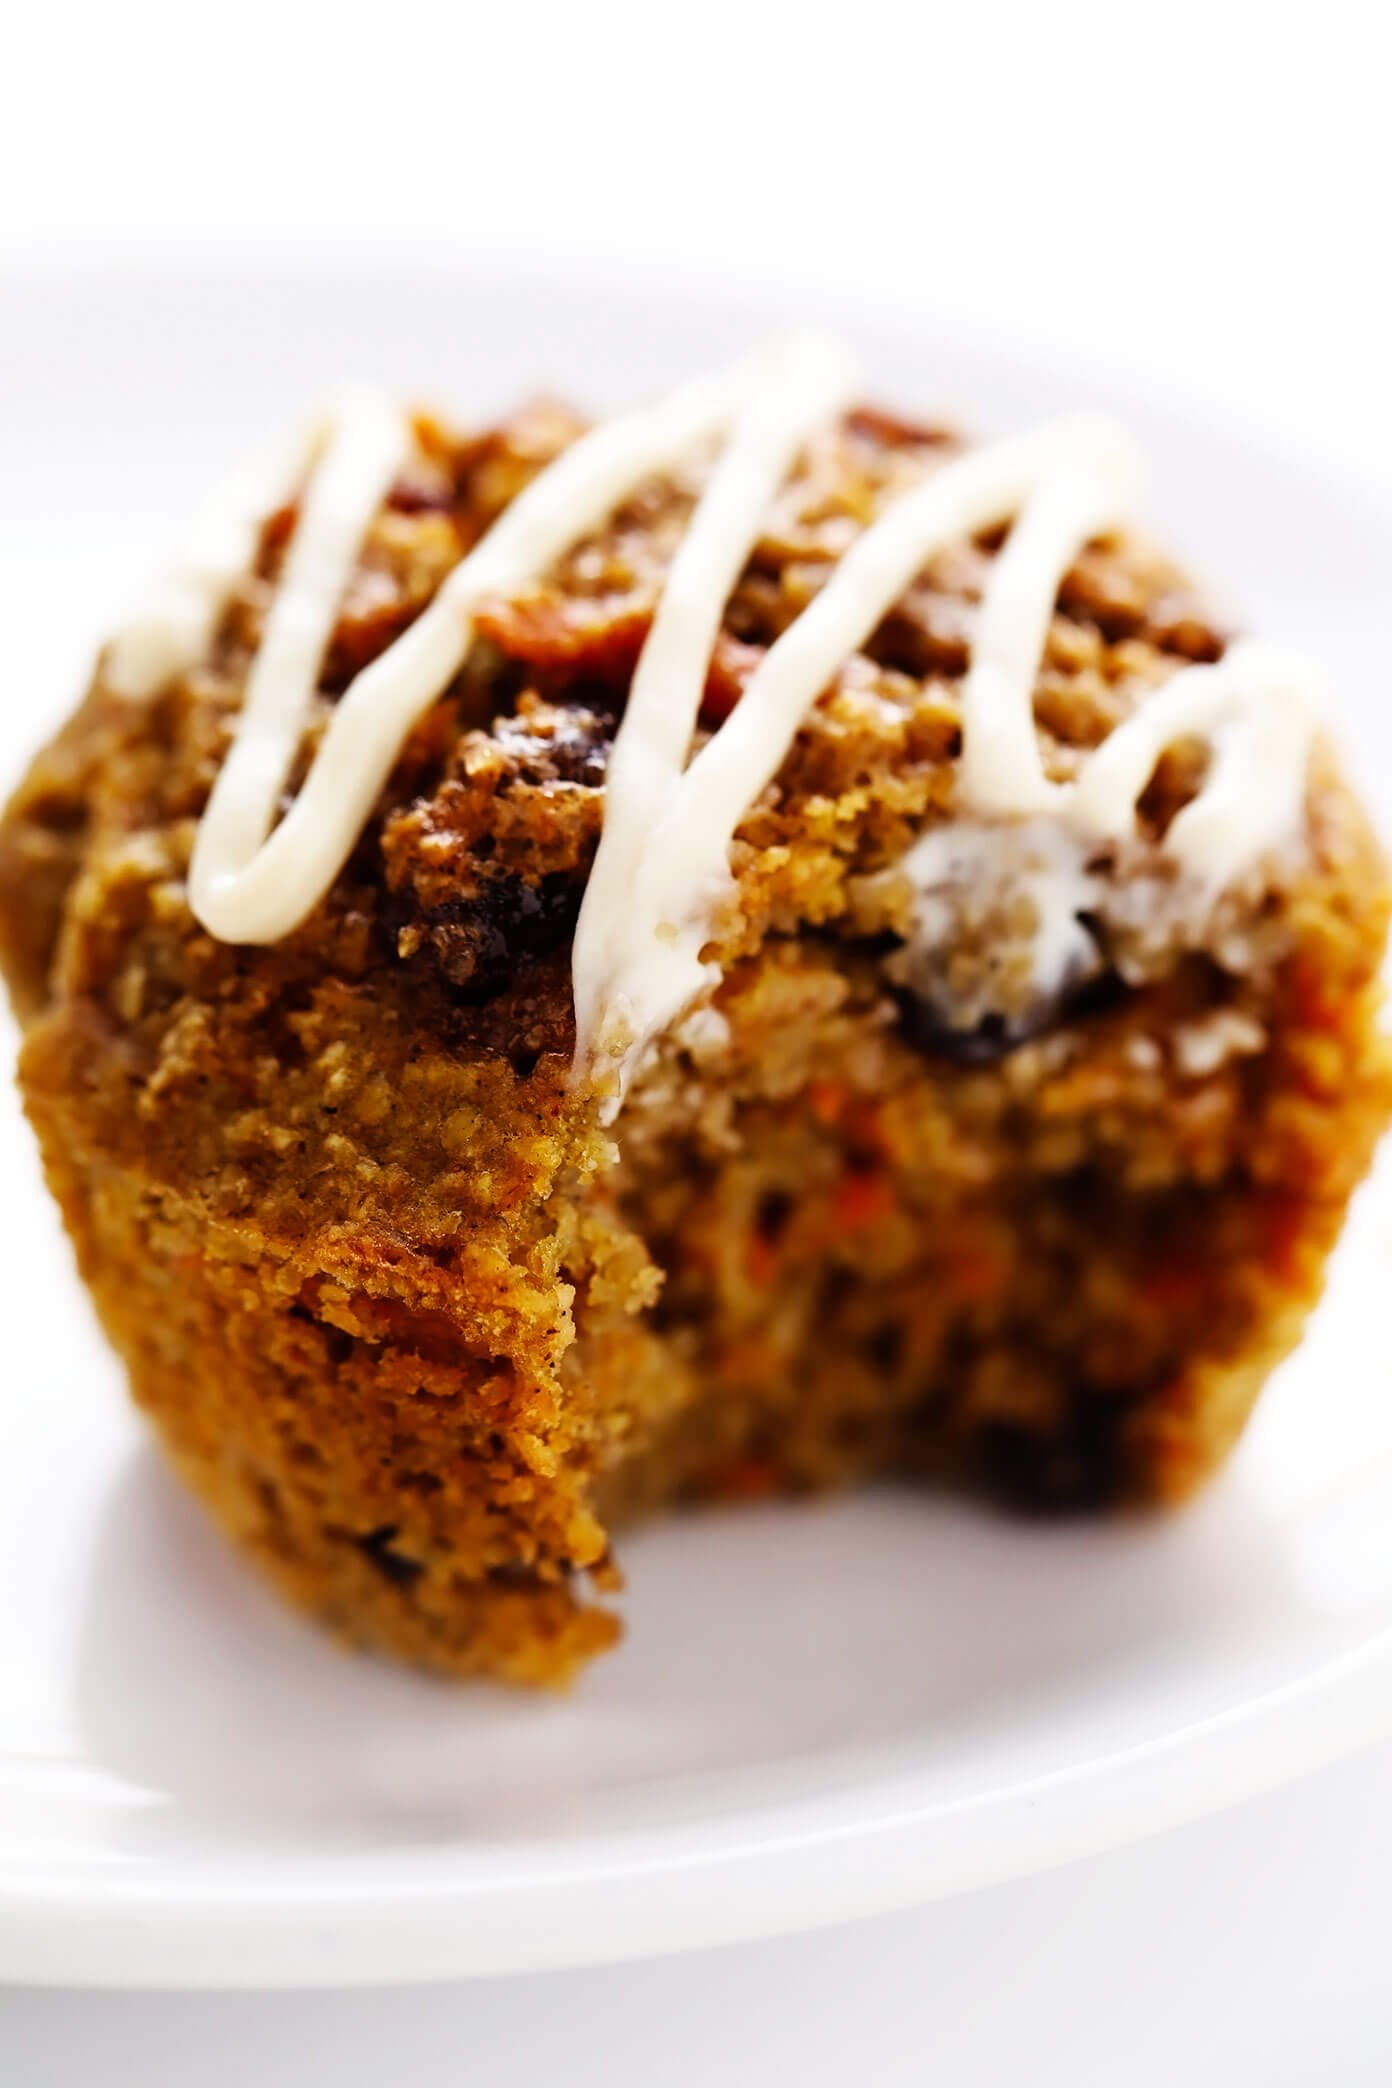 Healthy Carrot Cake Muffin with Bite Taken Out